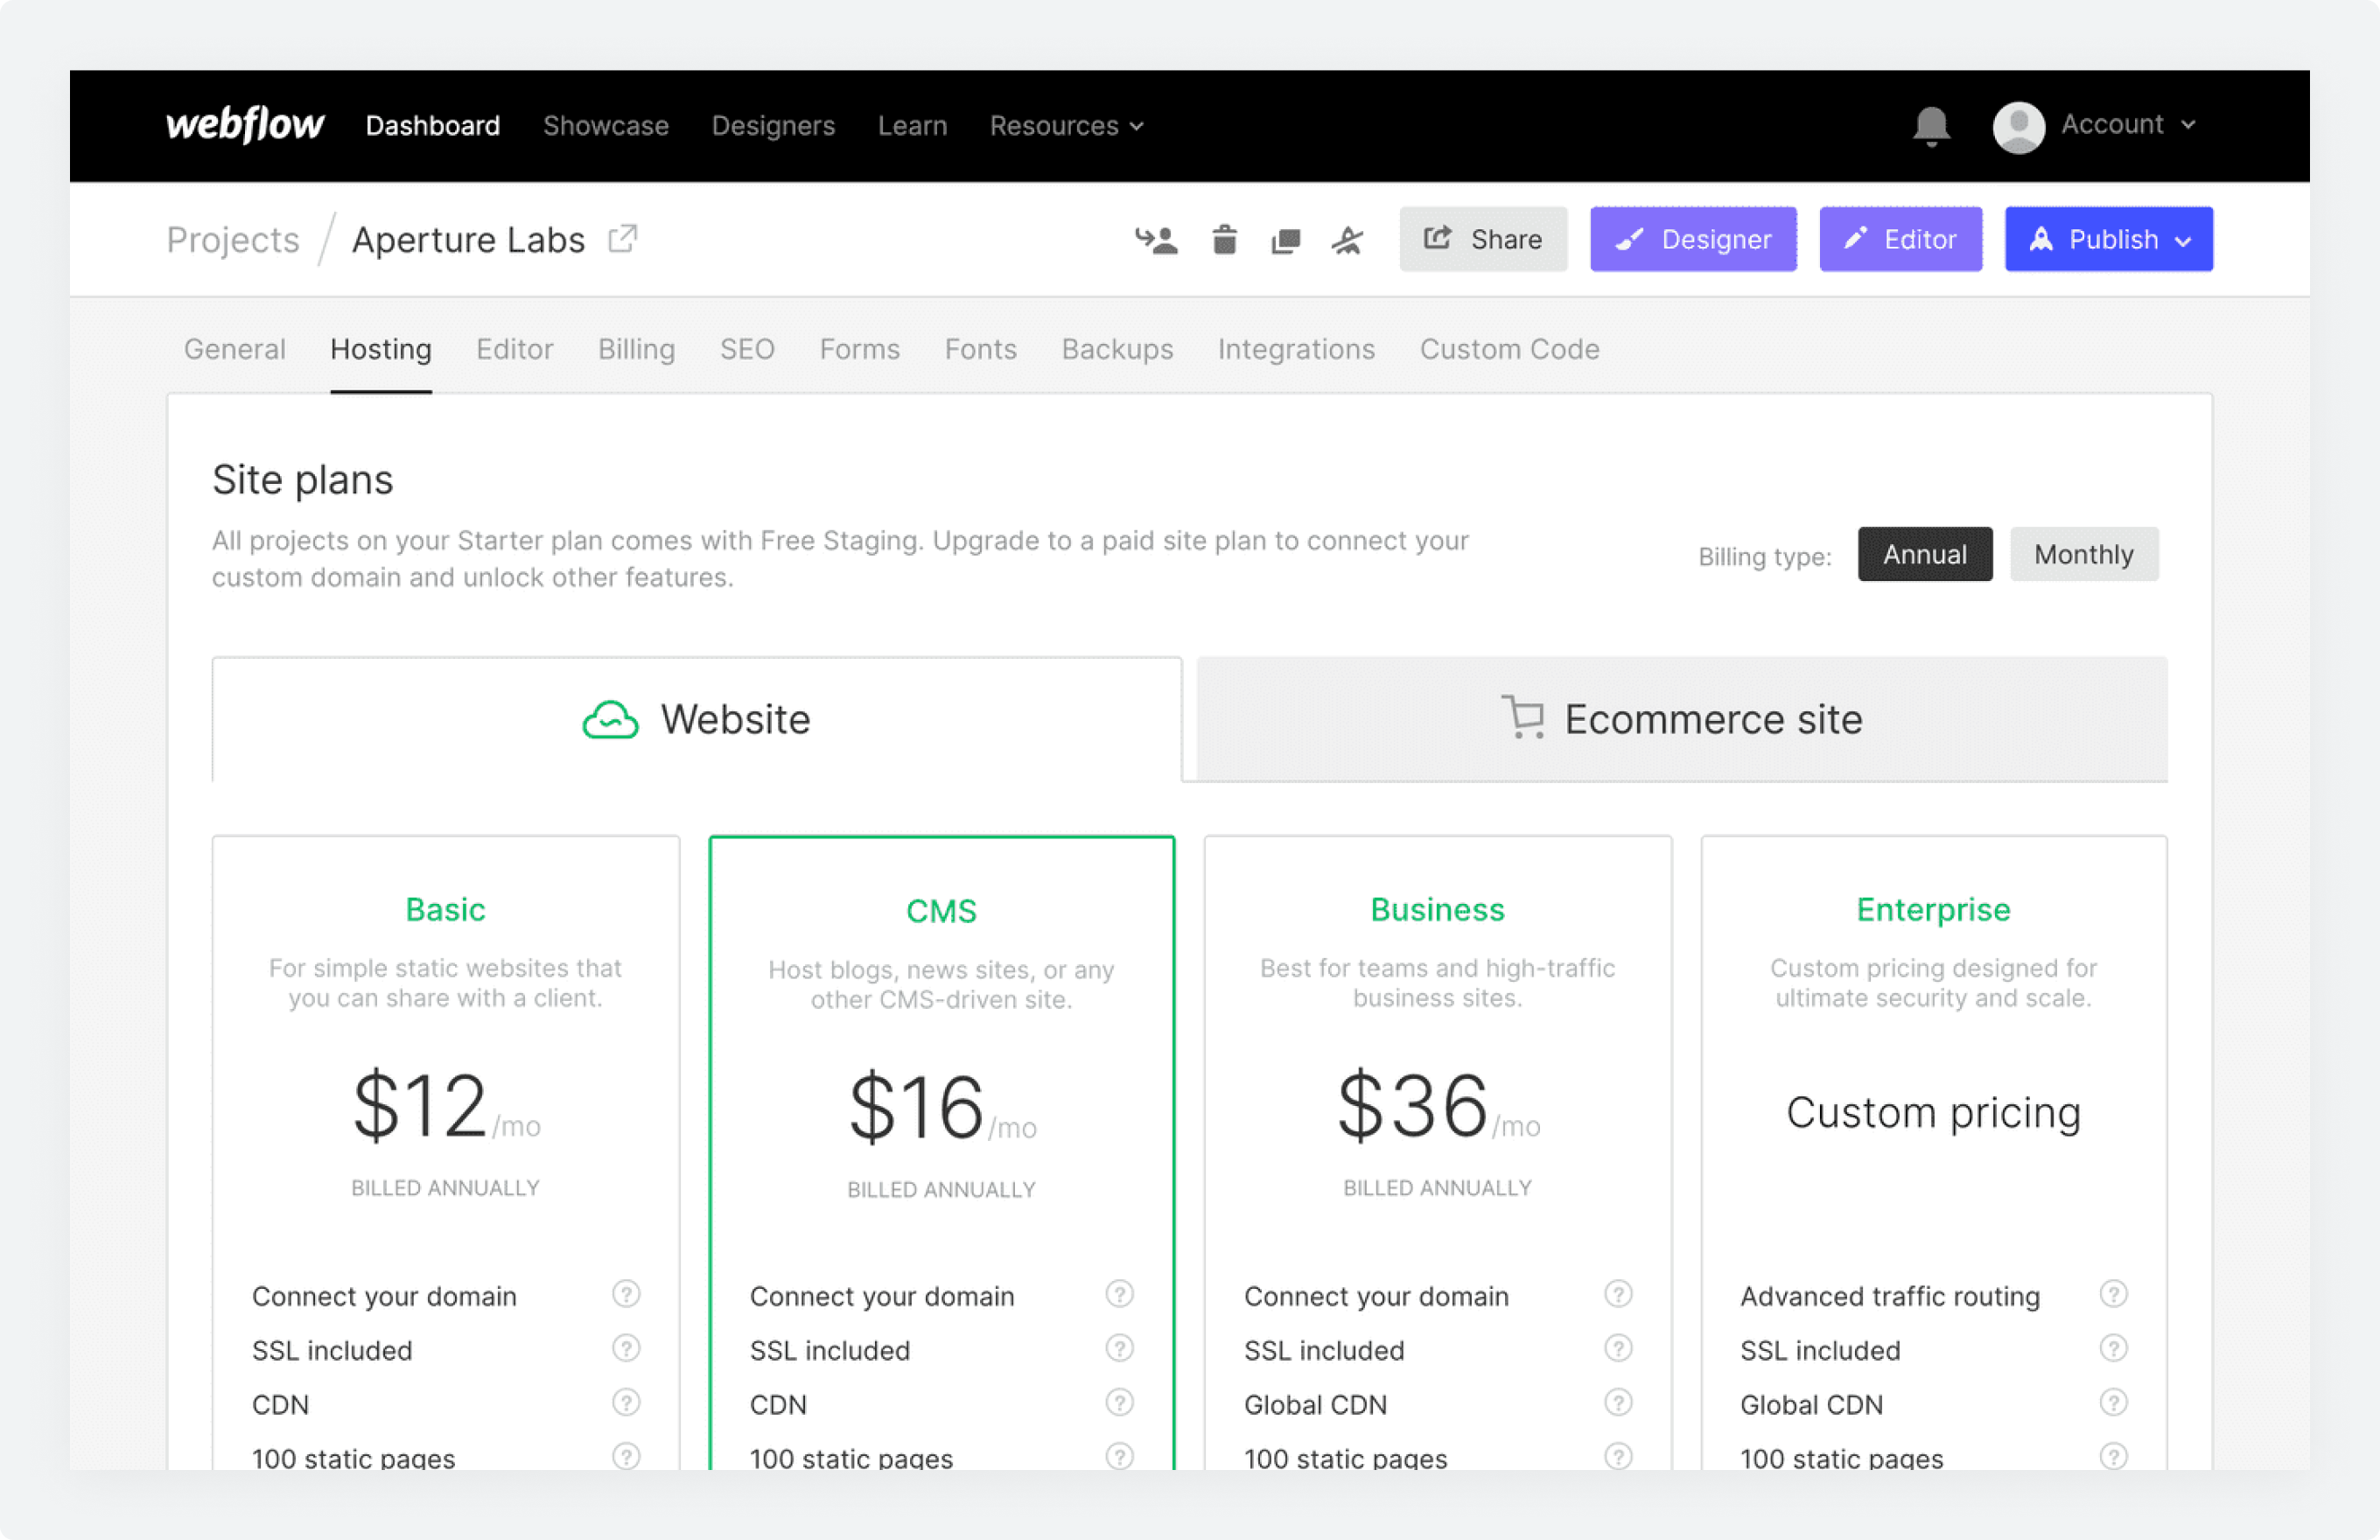 The Site plans pricing screen in Webflow